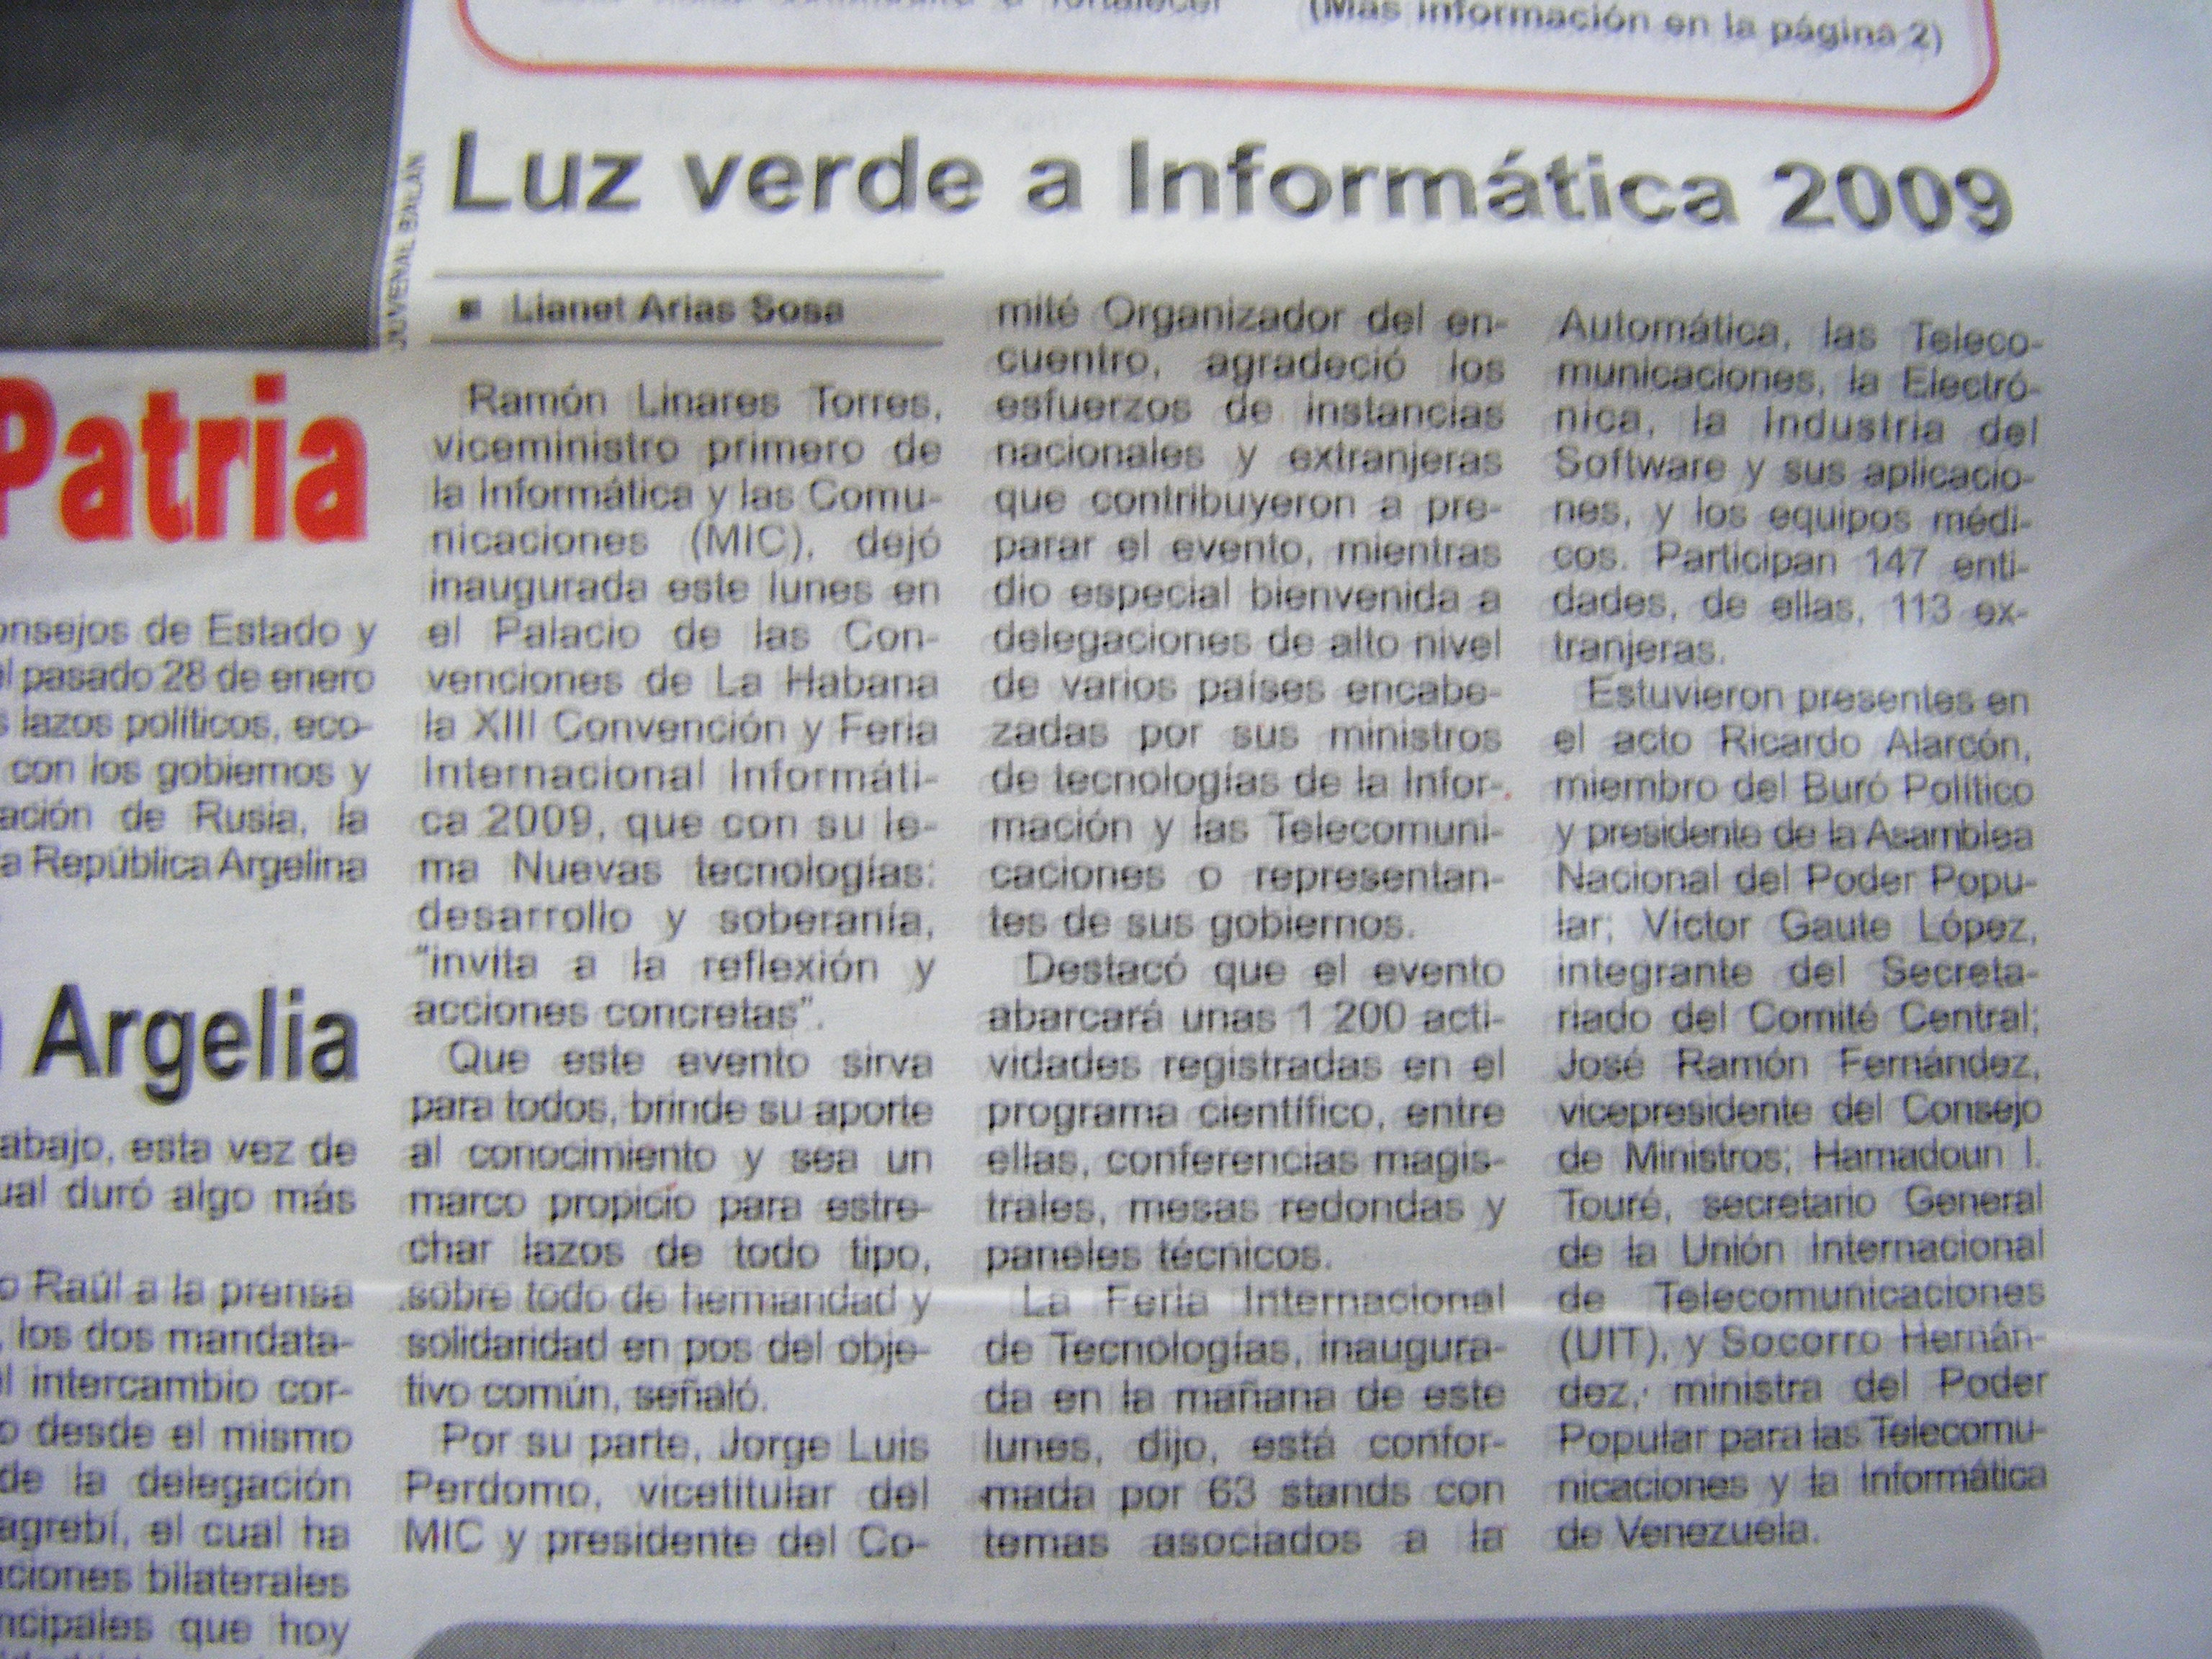 photo of the article on the front page of the Granma, about the opening of Informatica 2009